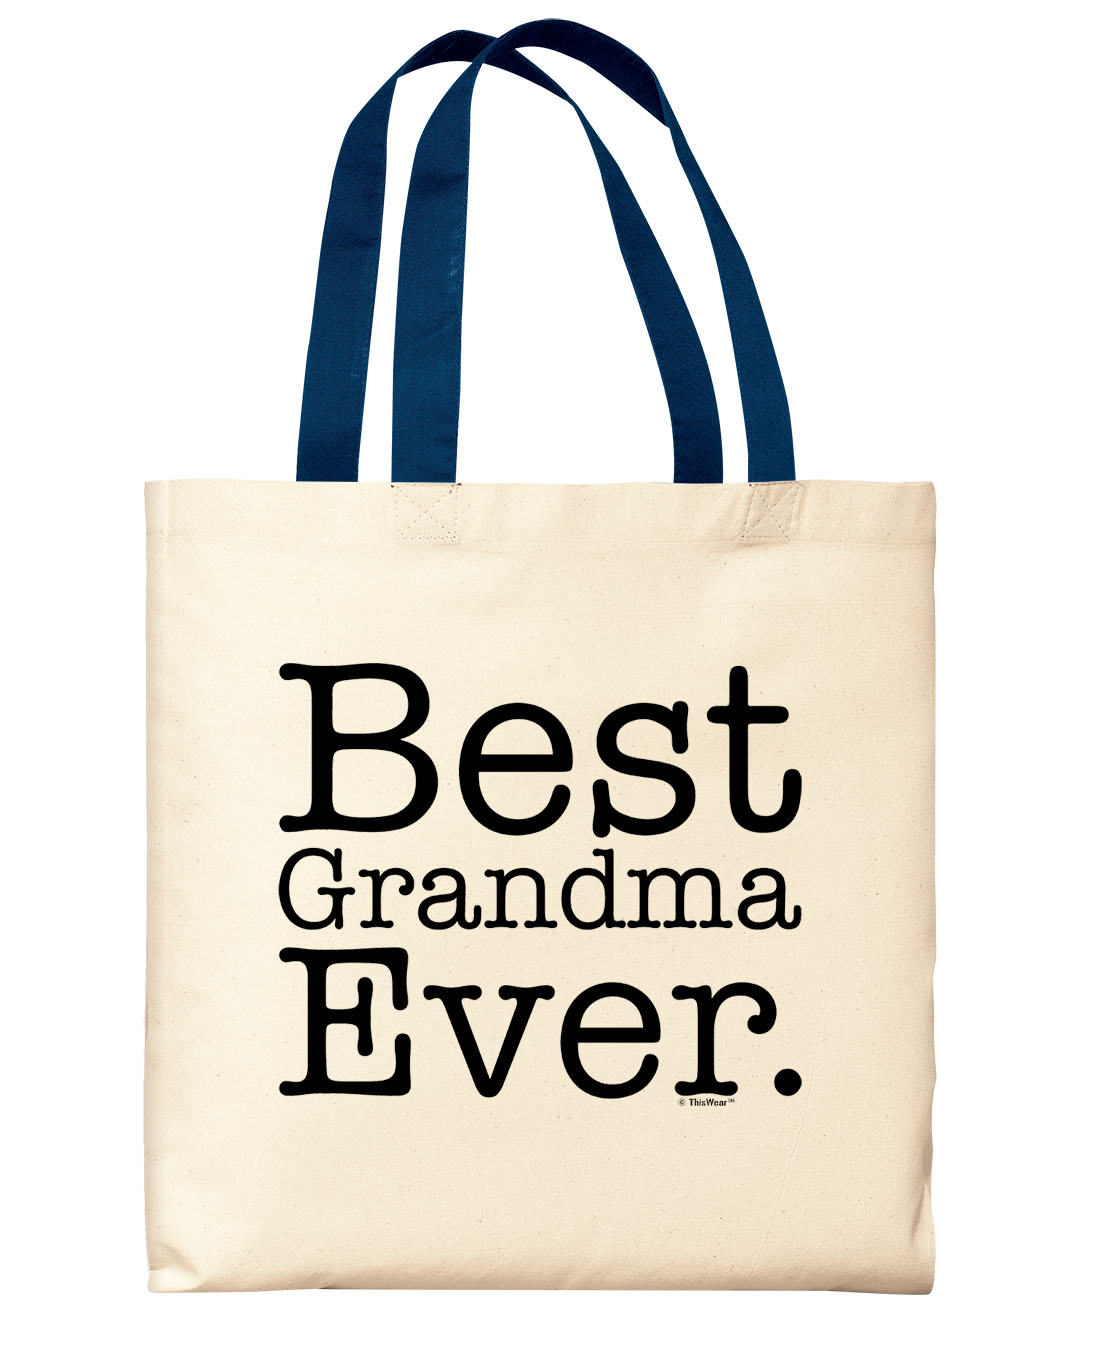 Details About New Grandma Gifts Best Grandma Ever Gift Ideas For Grandma Black Canvas Tote Bag